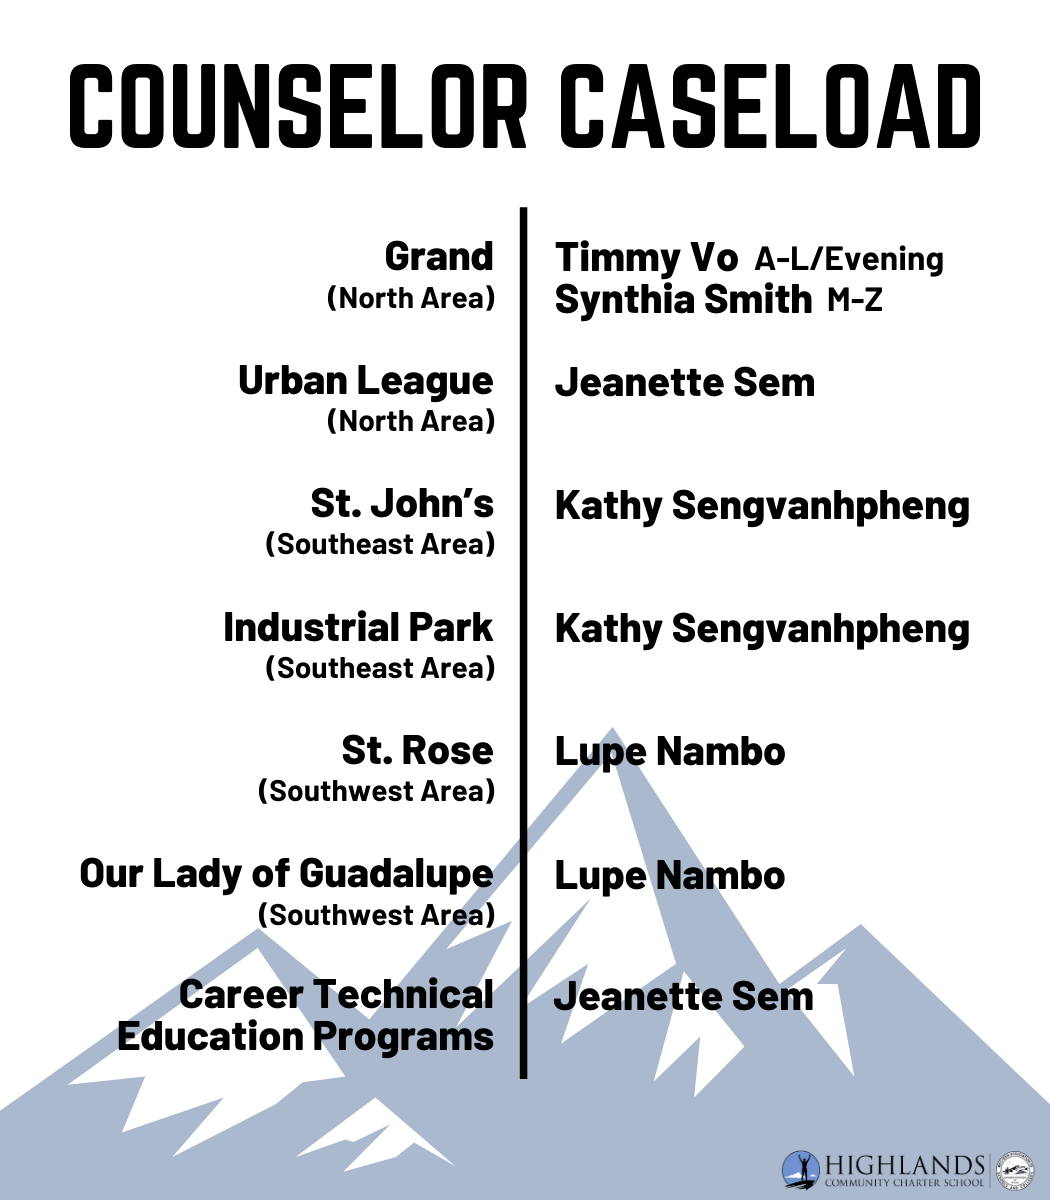 Counselor caseload